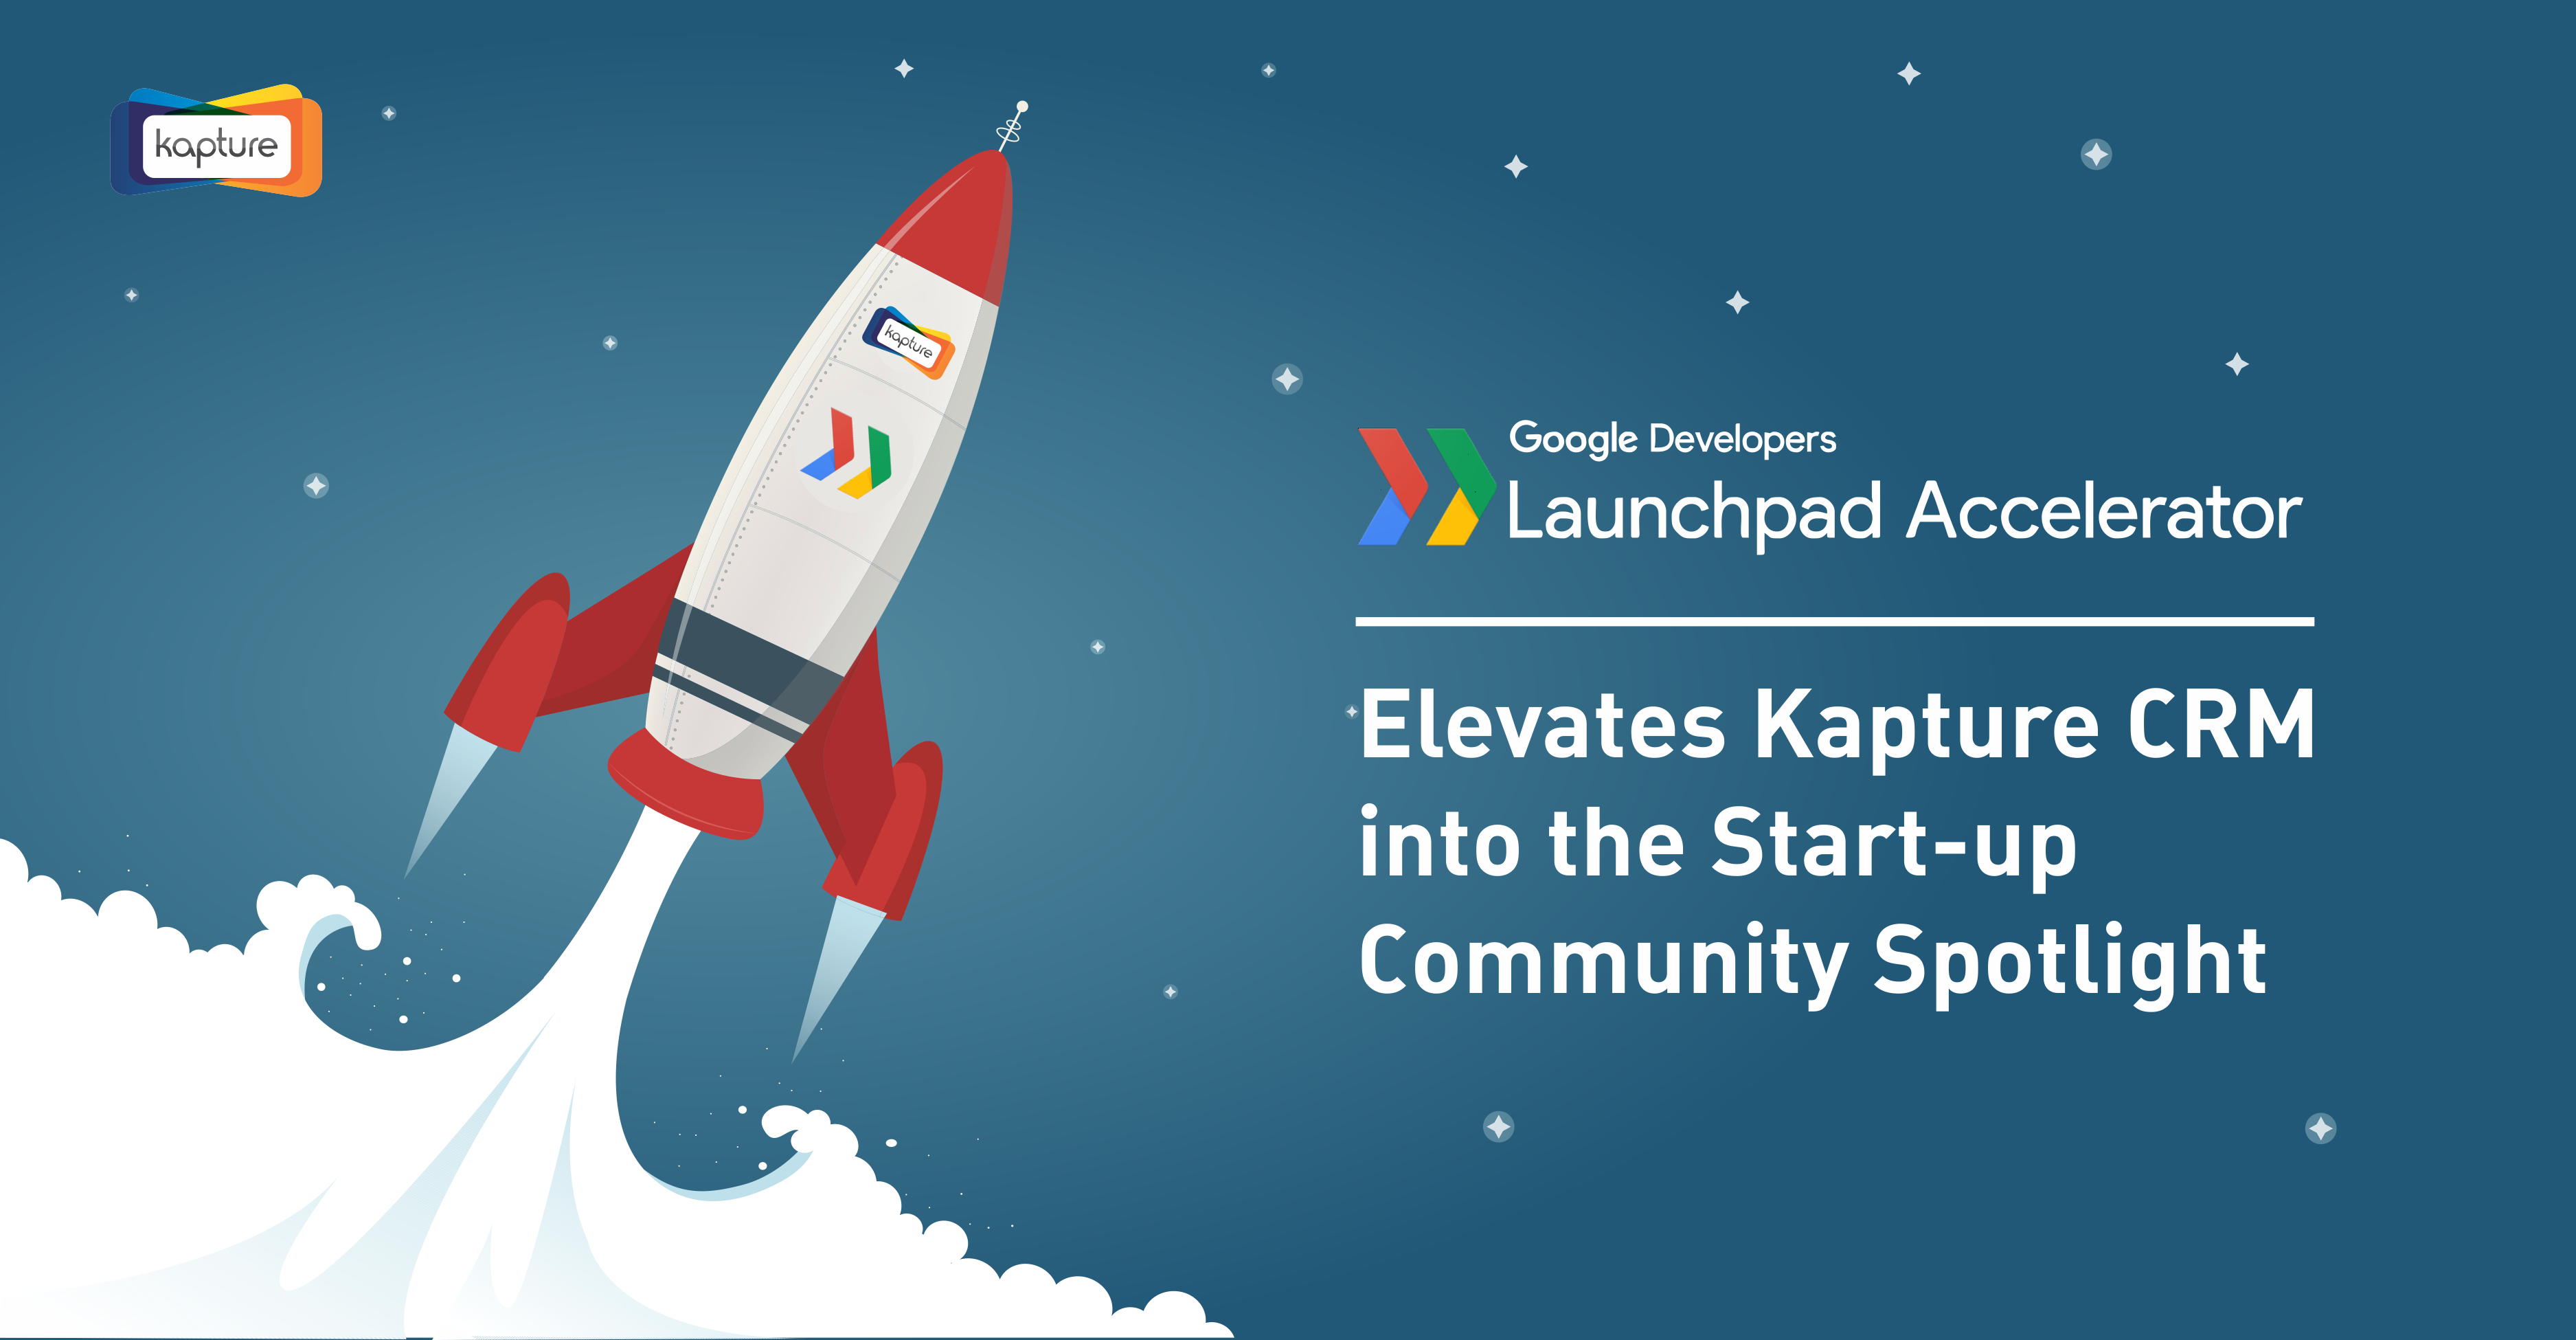 Google LaunchPad Accelerator programa elevates Kapture CRM sa Start-up Community Spotlight